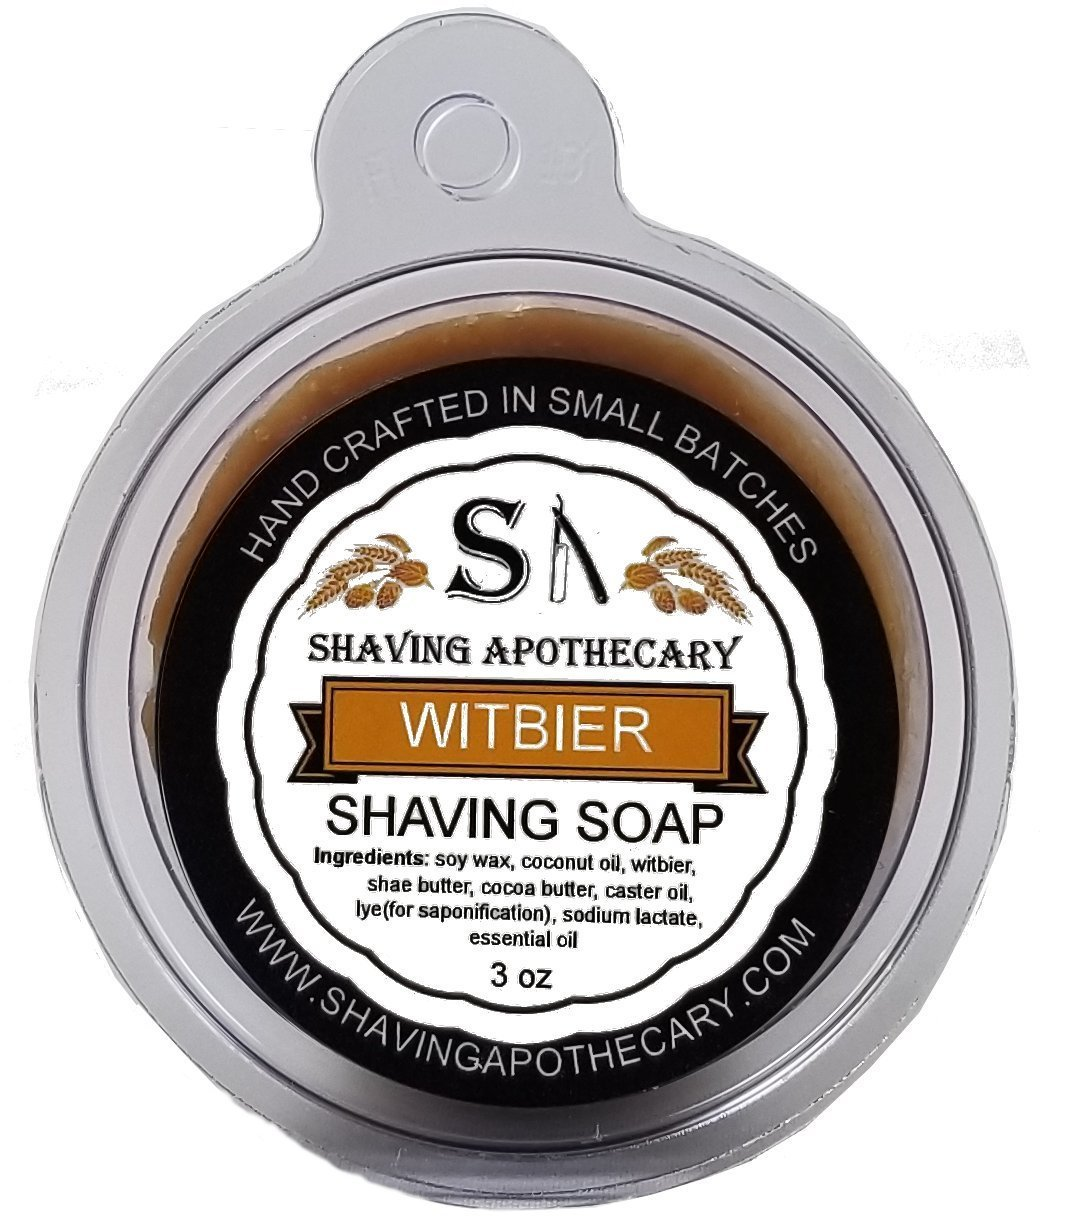 Shaving Apothecary shaving soap - Witbier with real beer